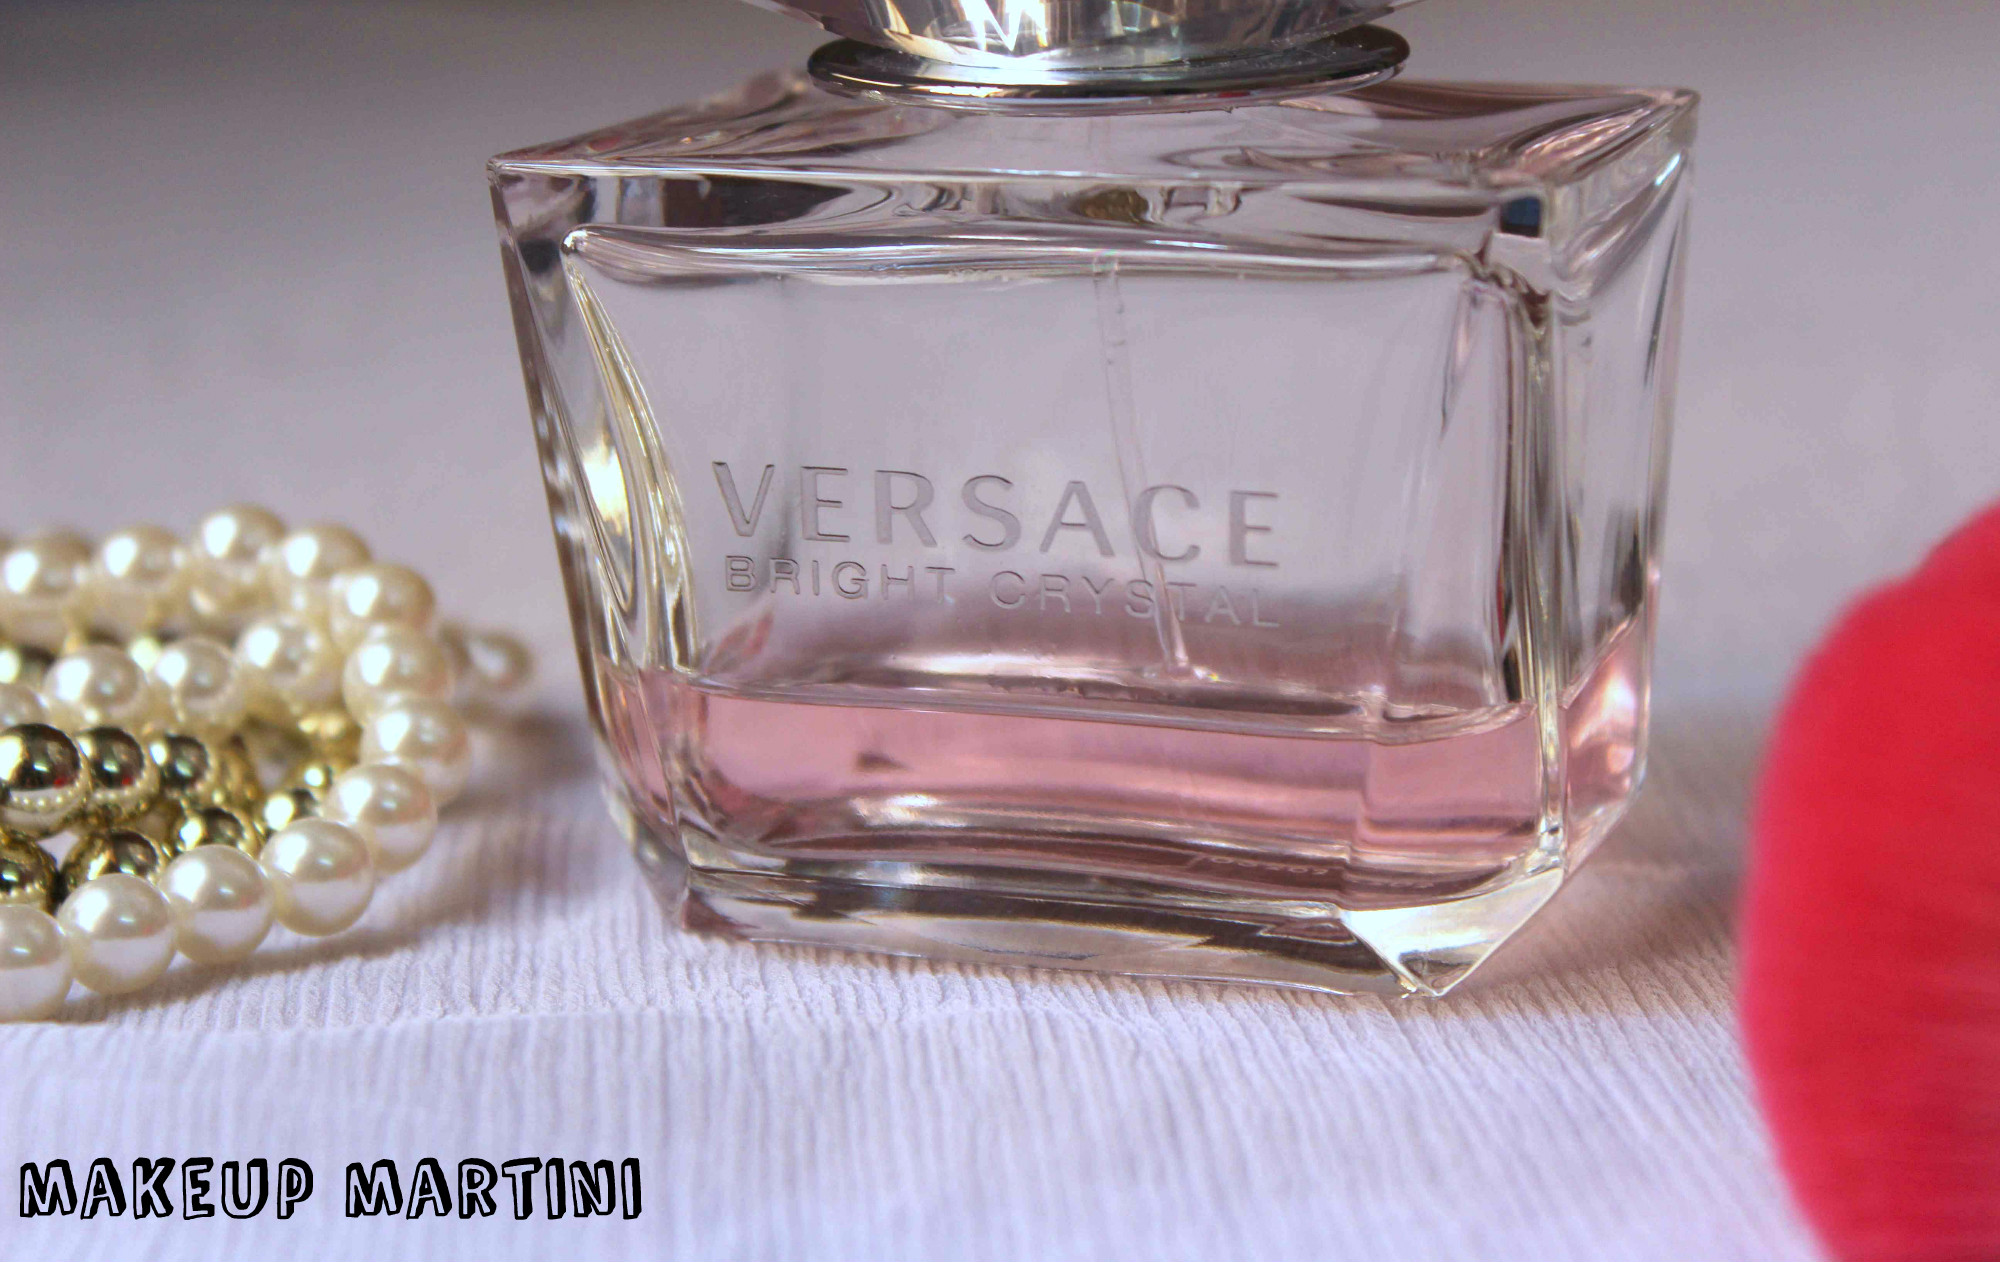 Versace Bright Crystal Perfume Review